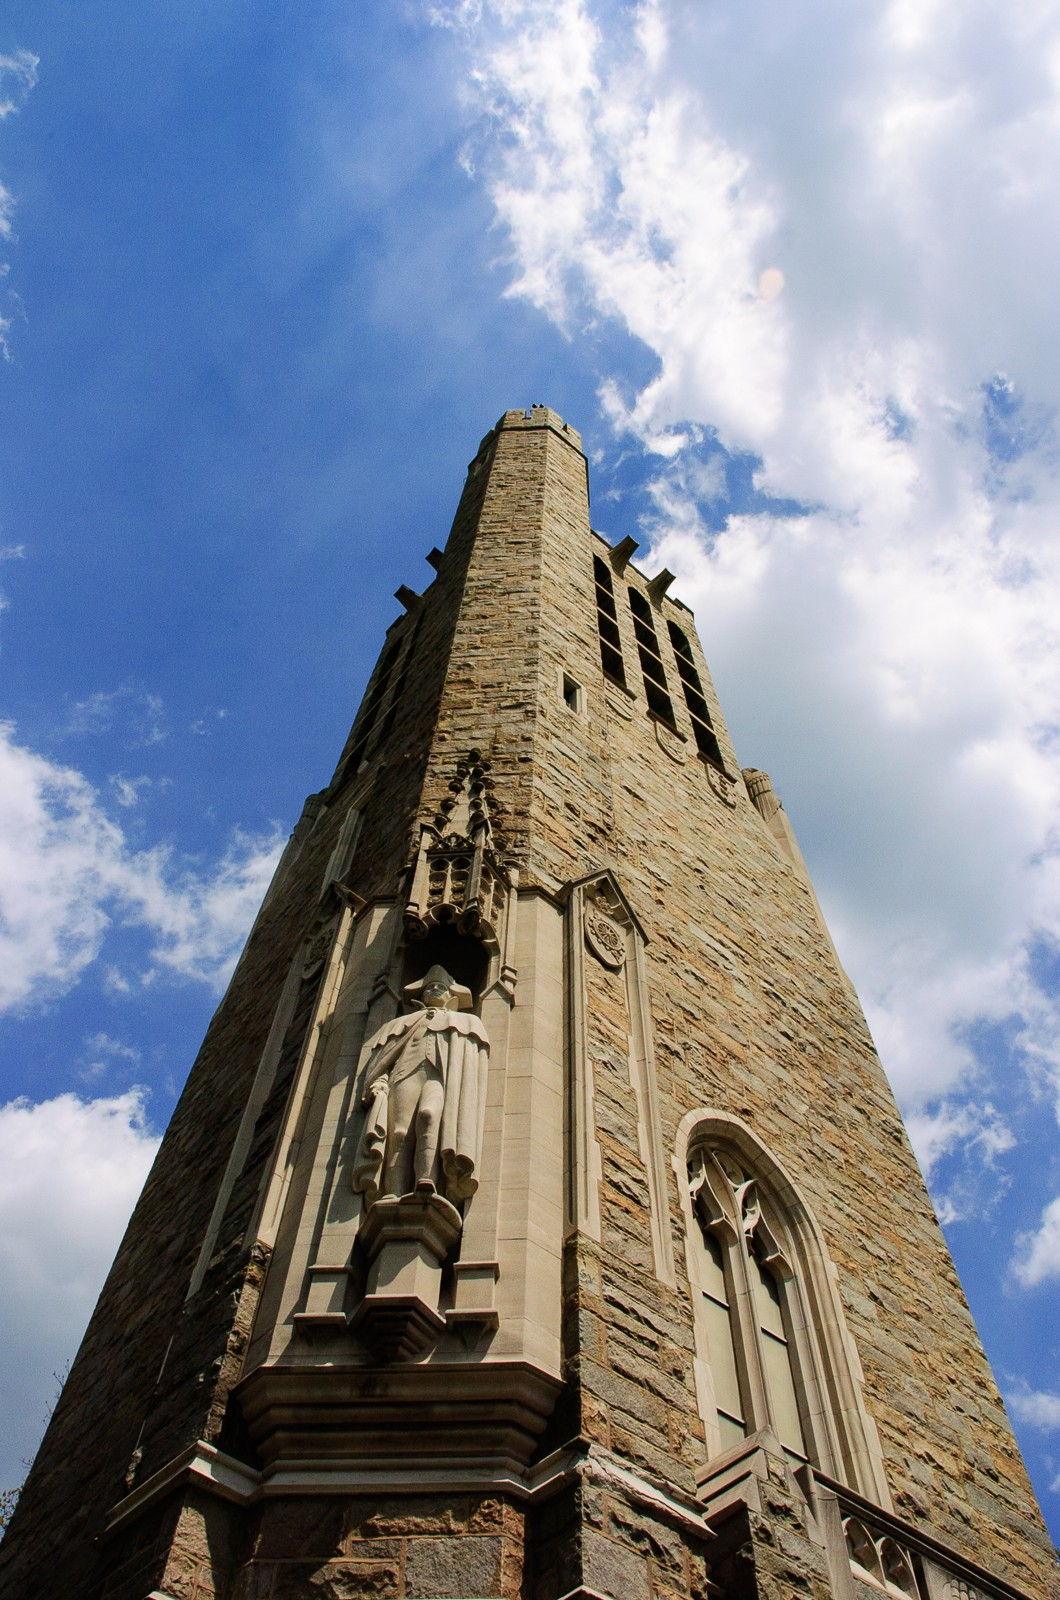 vf-bell-tower-0042